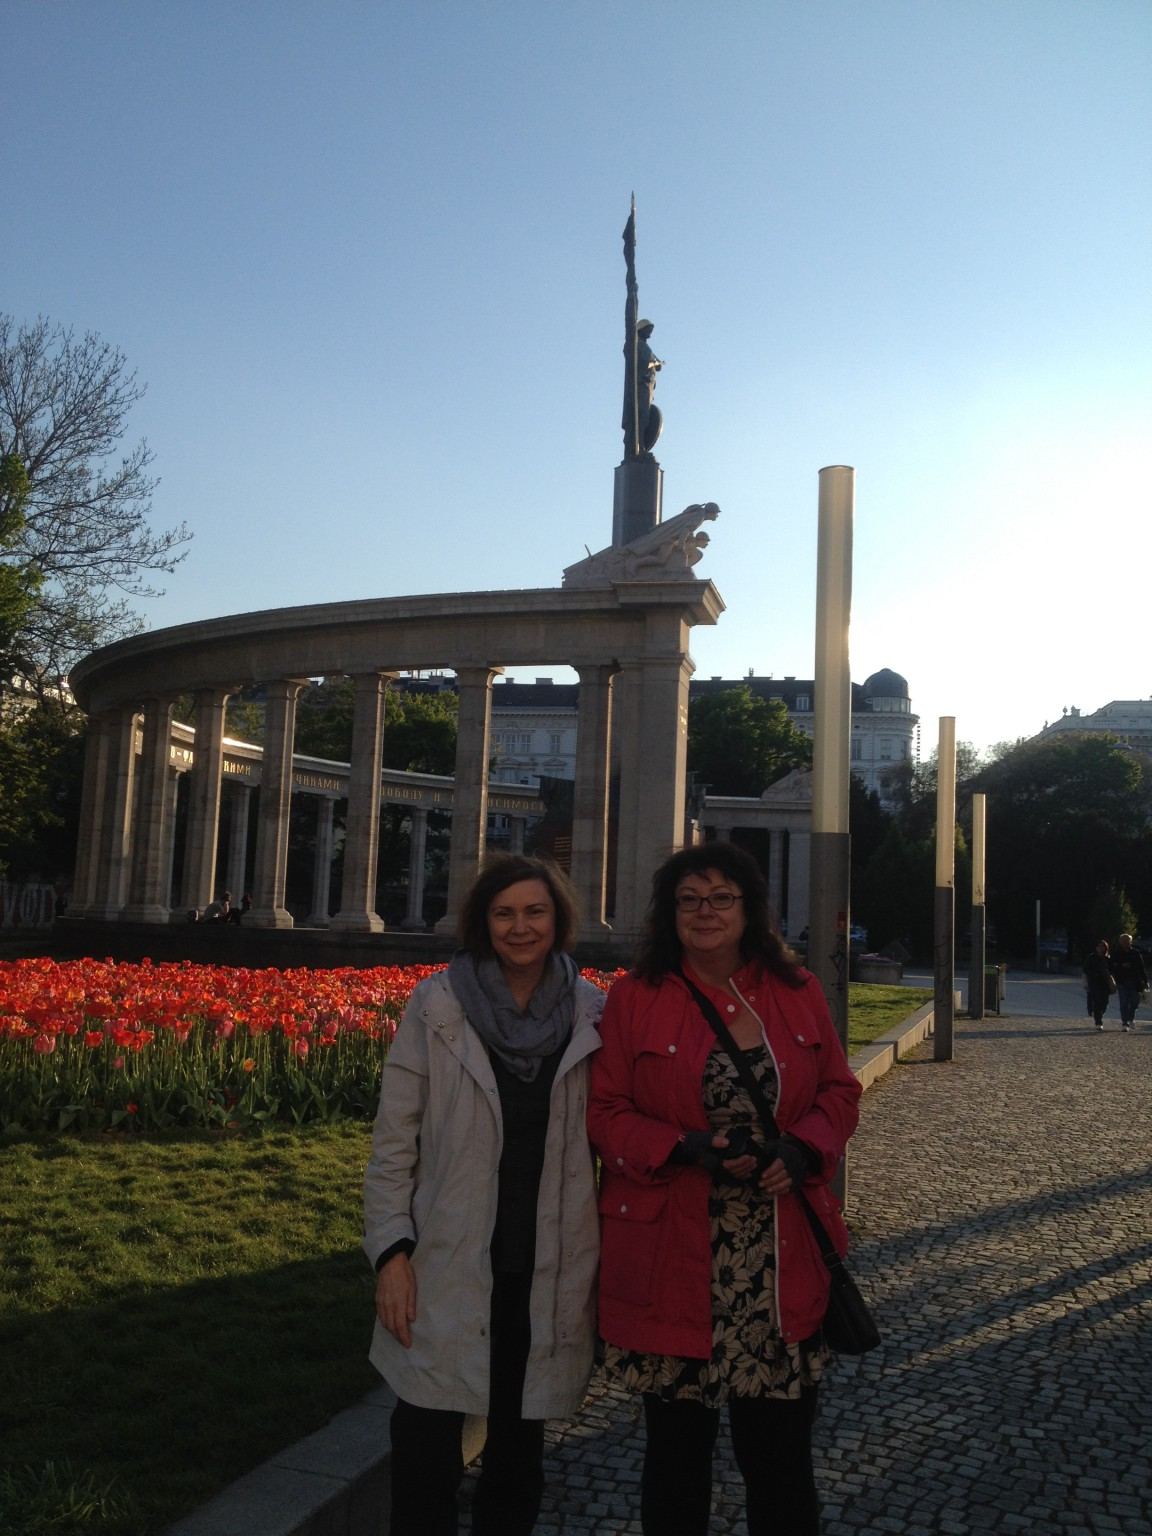 Adriane and Marina sightseeing in Vienna. We are in front of Soviet War Memorial